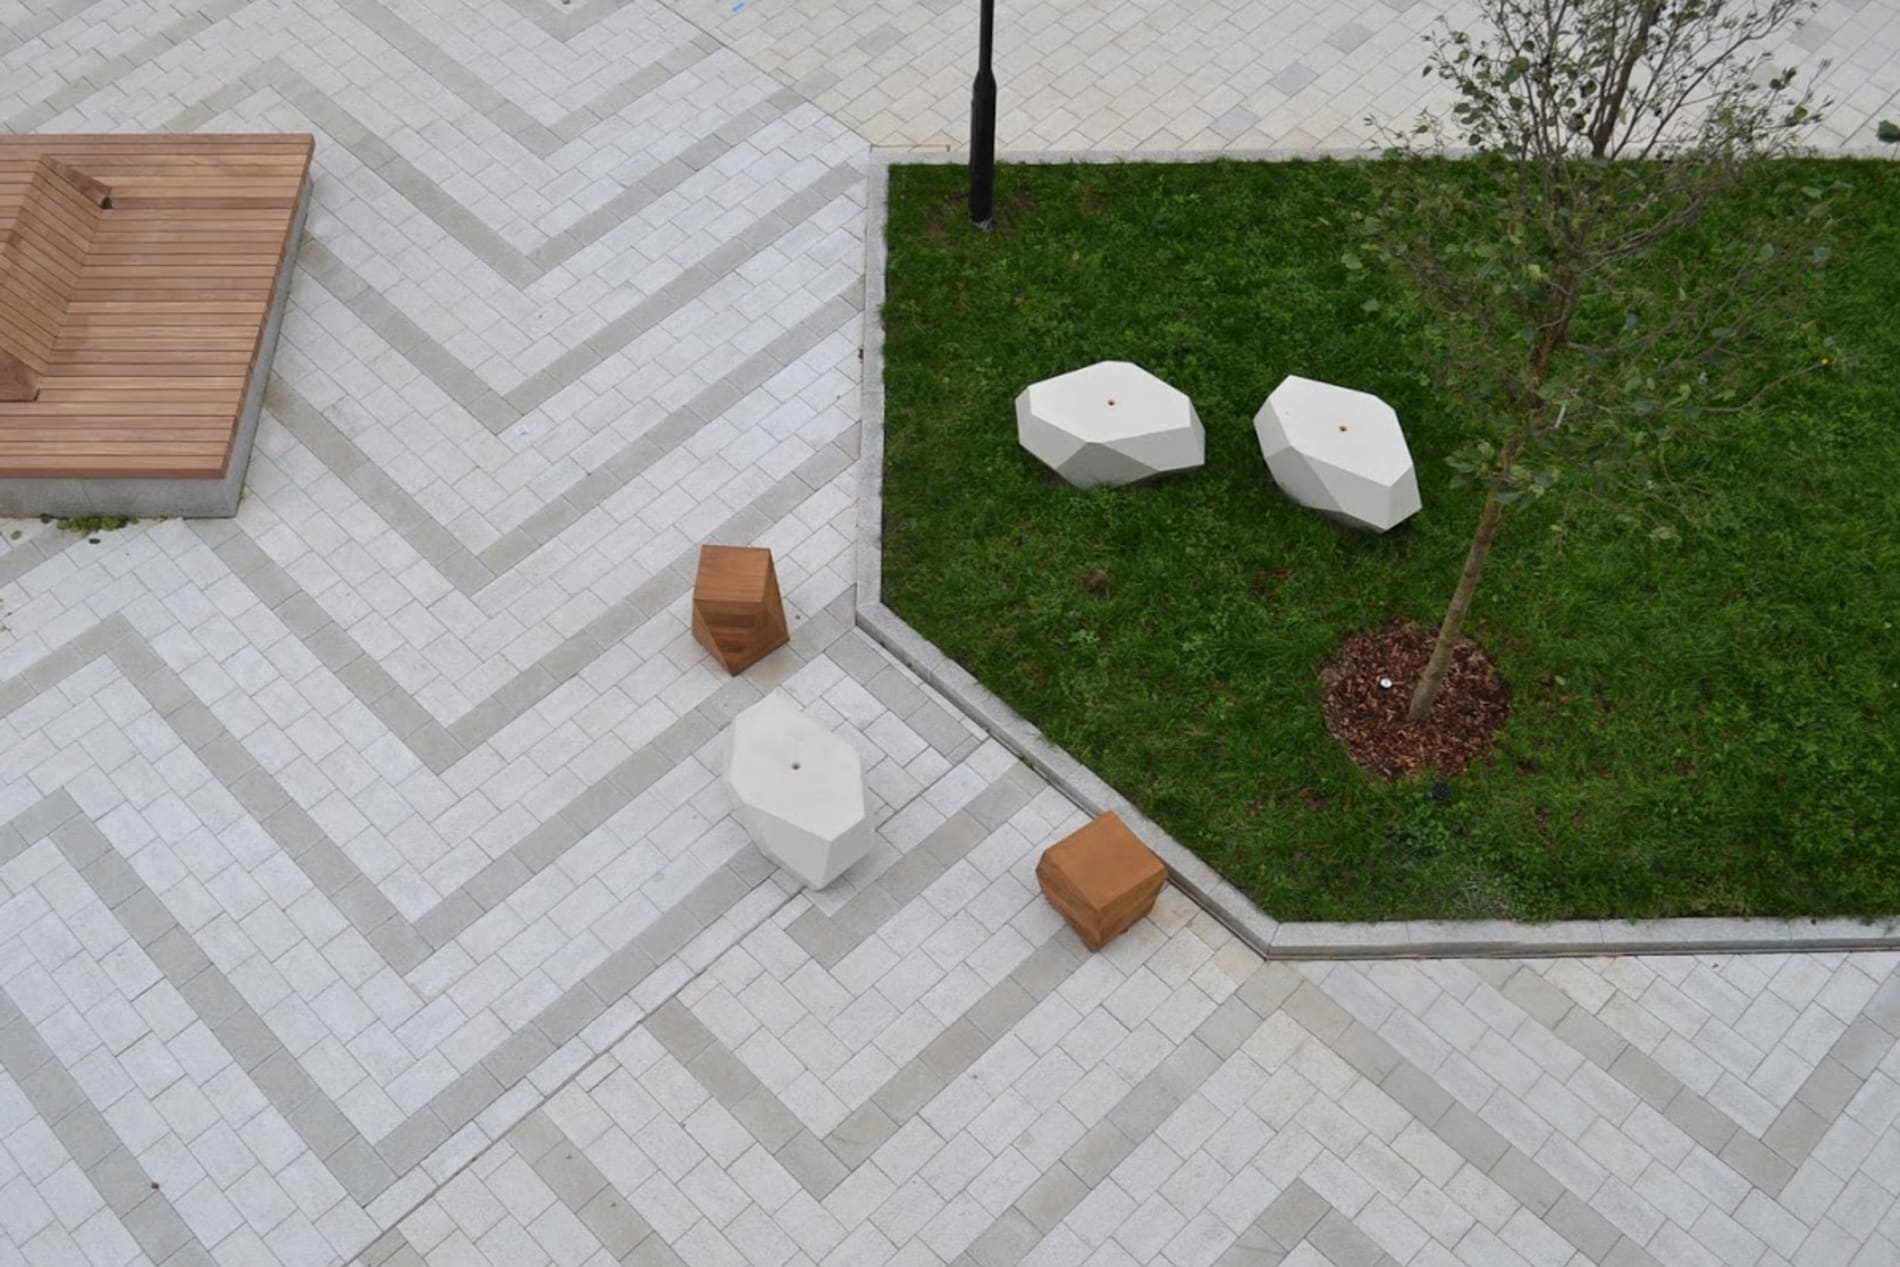 Modal paving outside a shopping centre in a zig-zag pattern